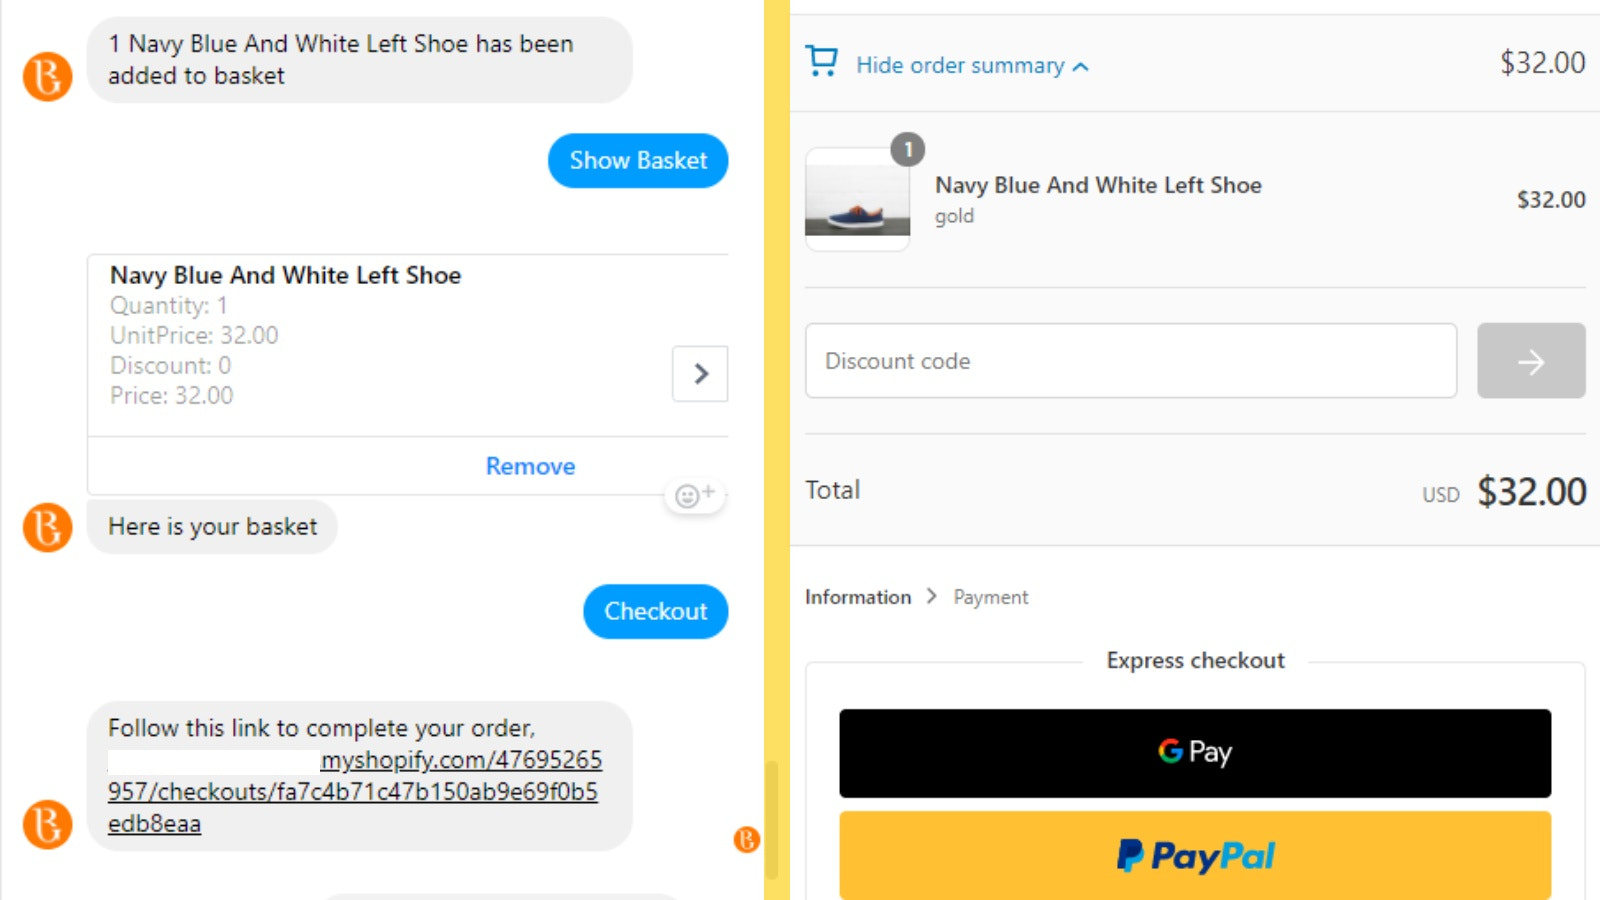 Complete checkout using your shops checkout system!